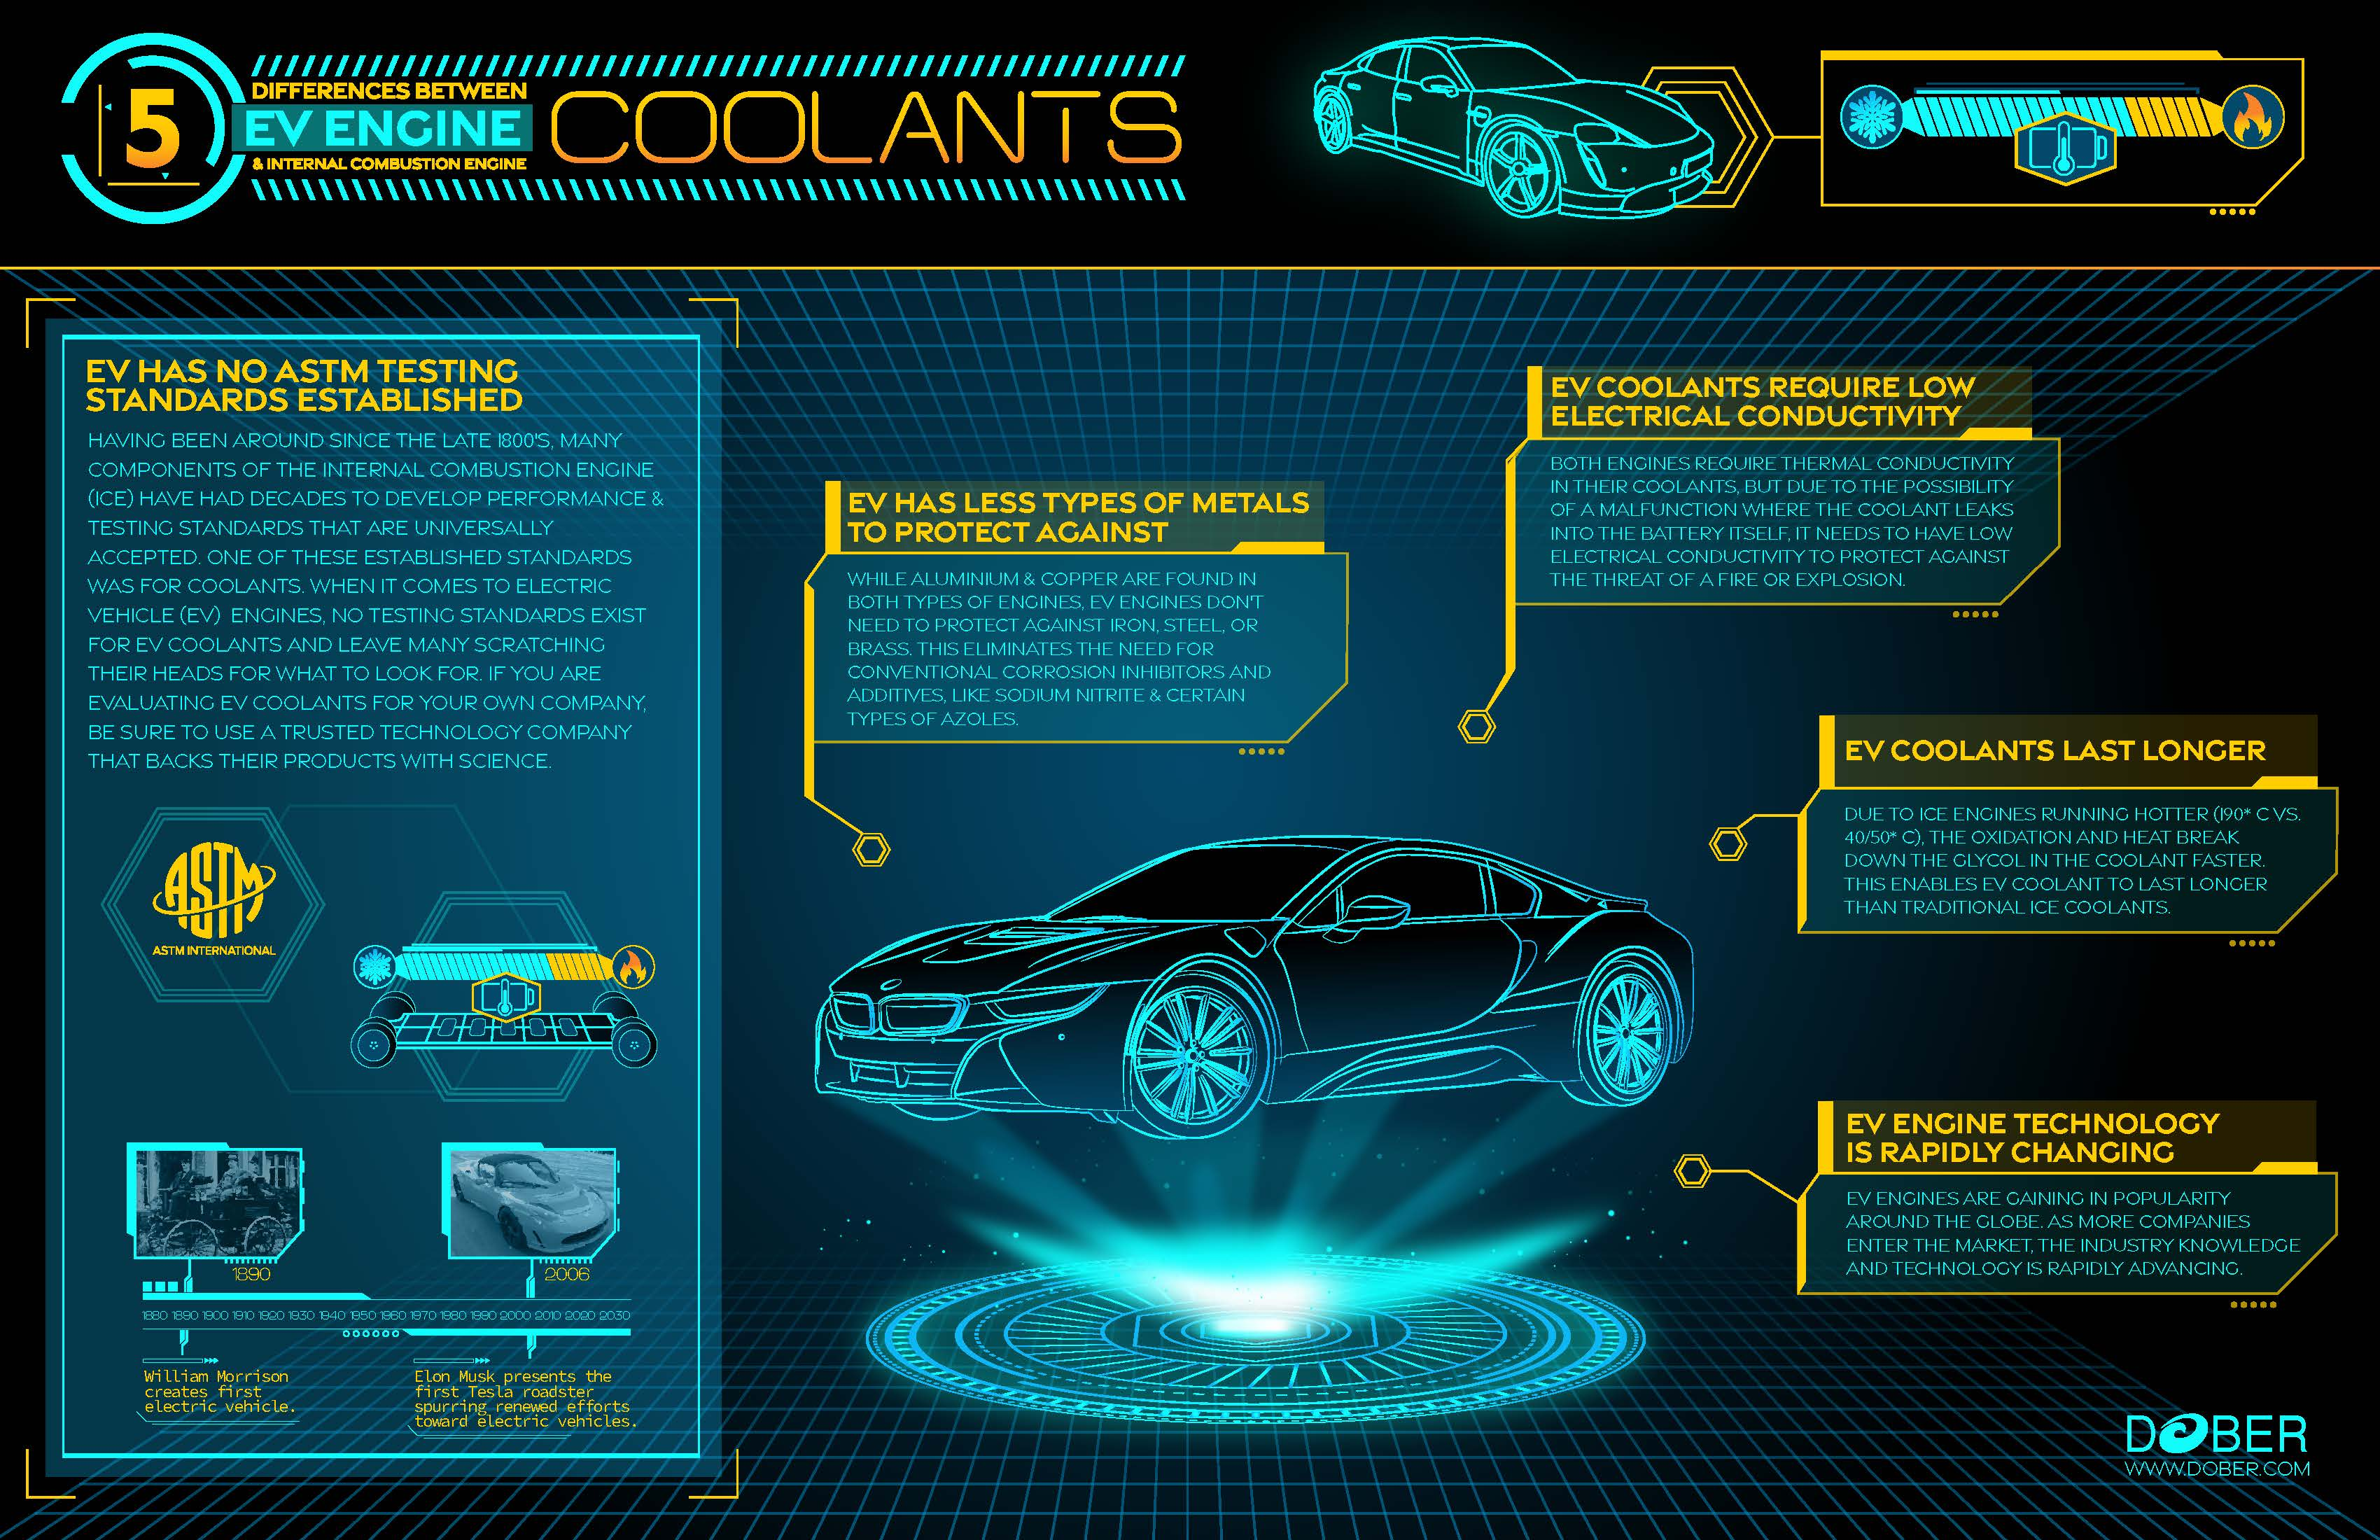 5 Differences Between Internal Combustion Engine and Electric Vehicle Coolants